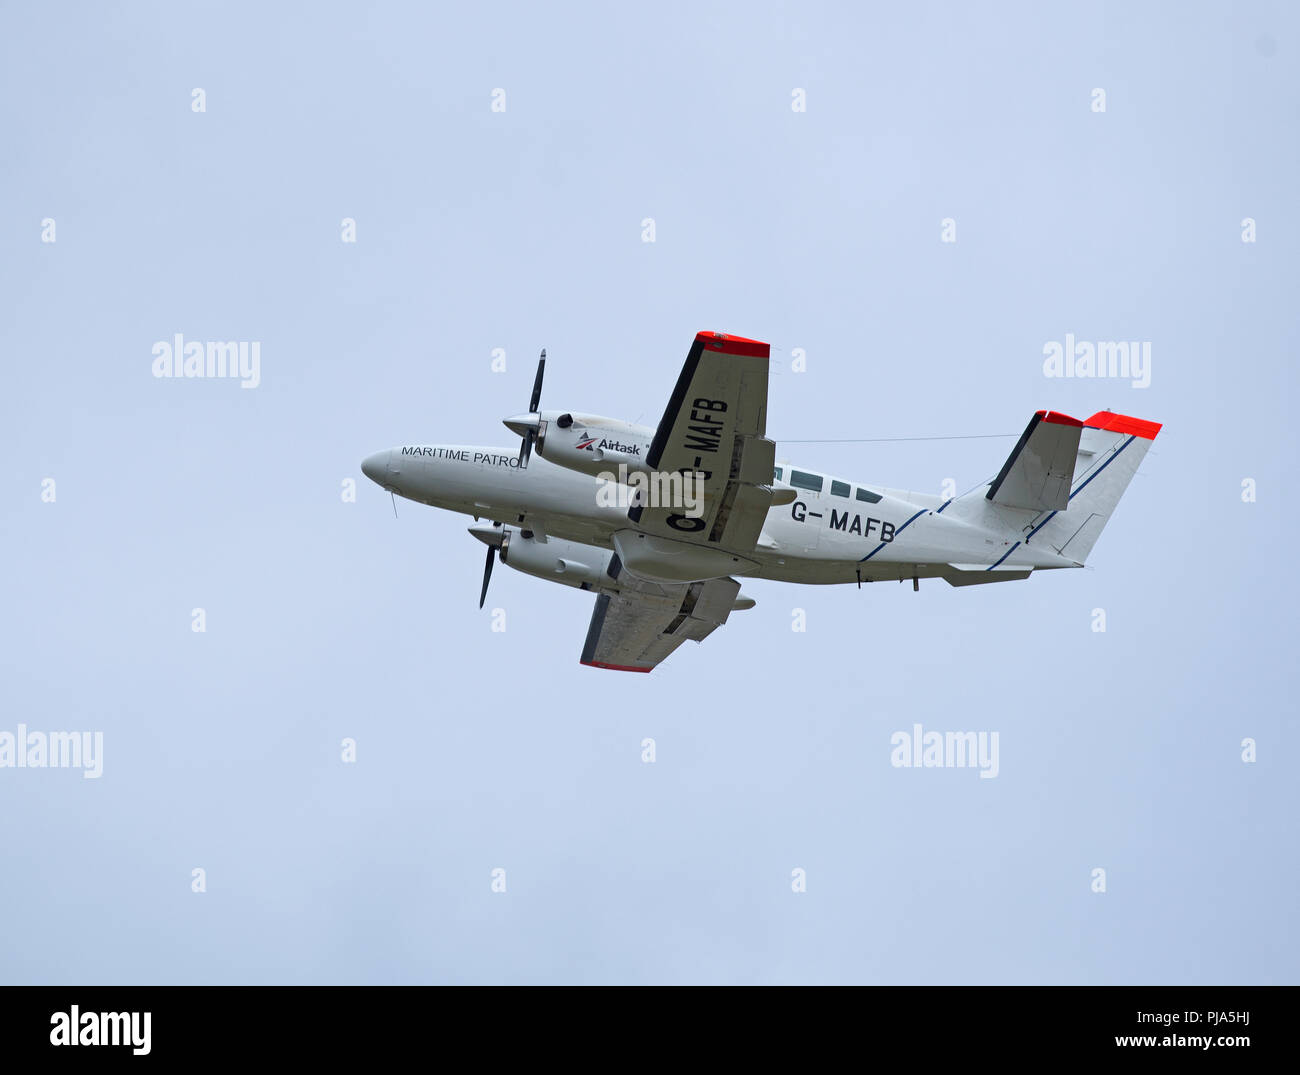 A marine & Fisheries Board twin engined aircraft leaving Inverness for a surveillance flight round the Orkney Isles to protect rising interests. - Stock Image